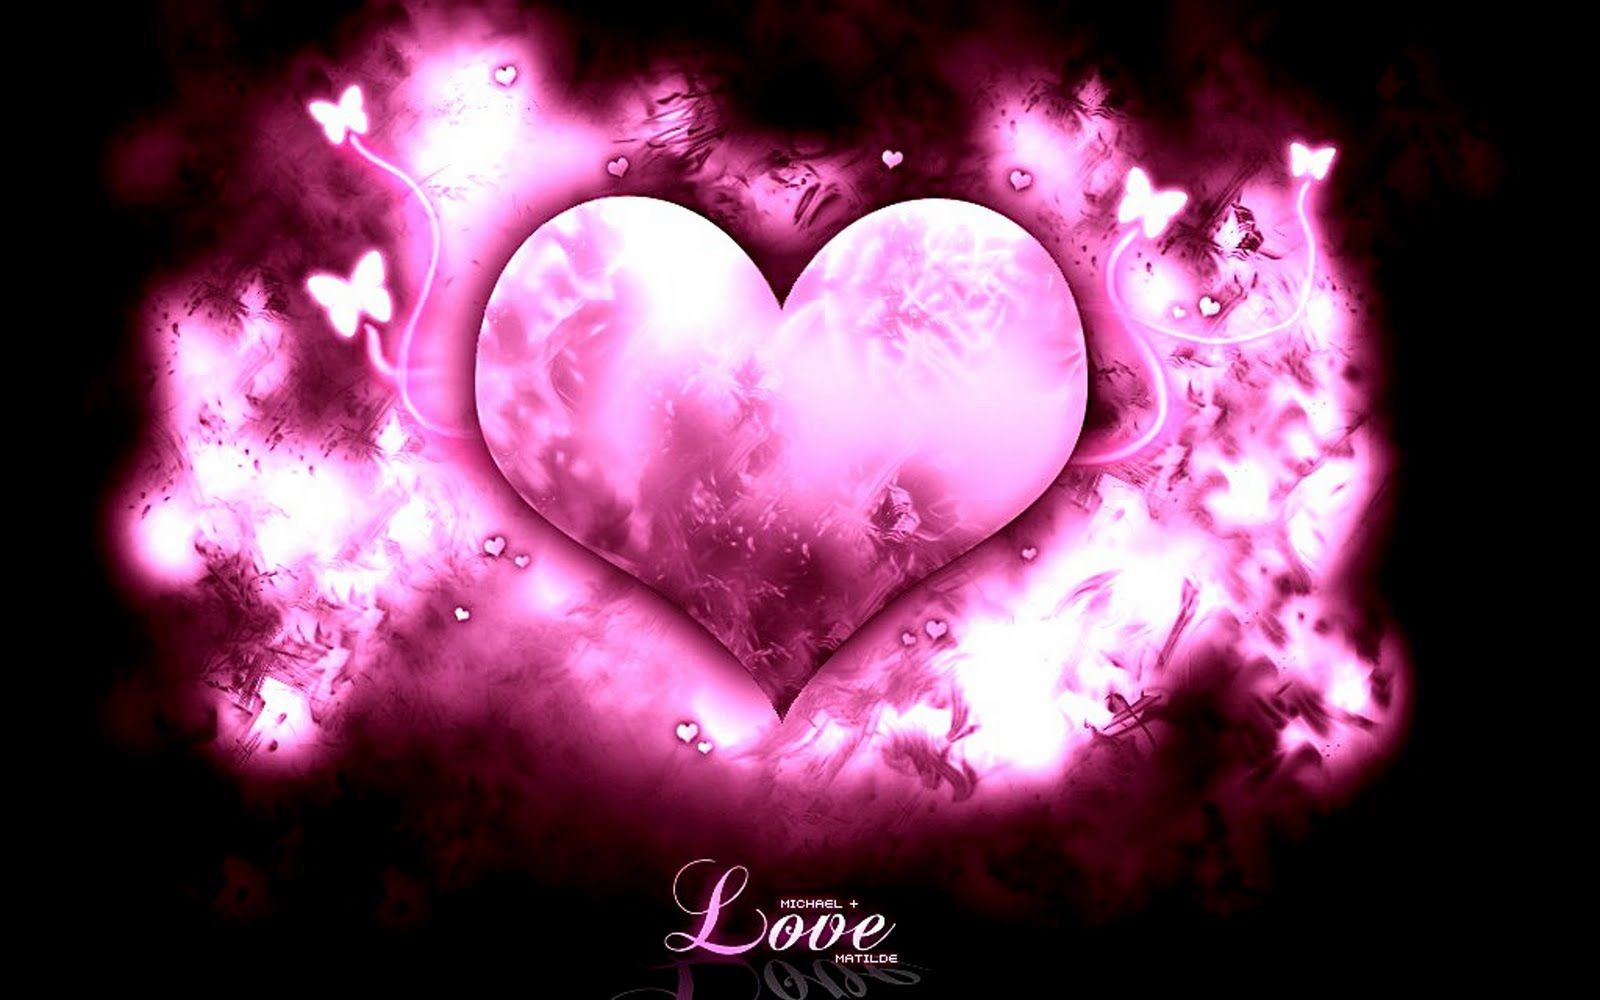 Cute Heart And Love Wallpapers With Different Backgrounds With